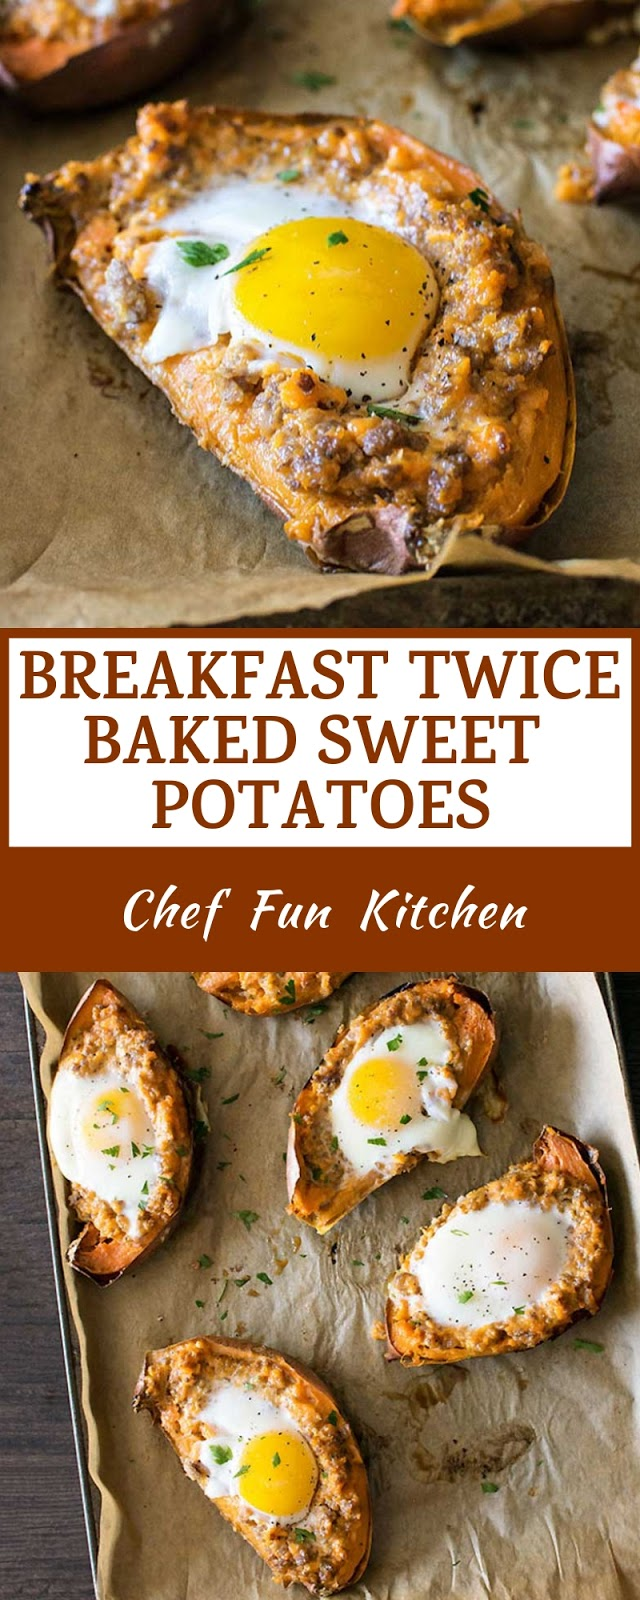 BREAKFAST TWICE BAKED SWEET POTATOES